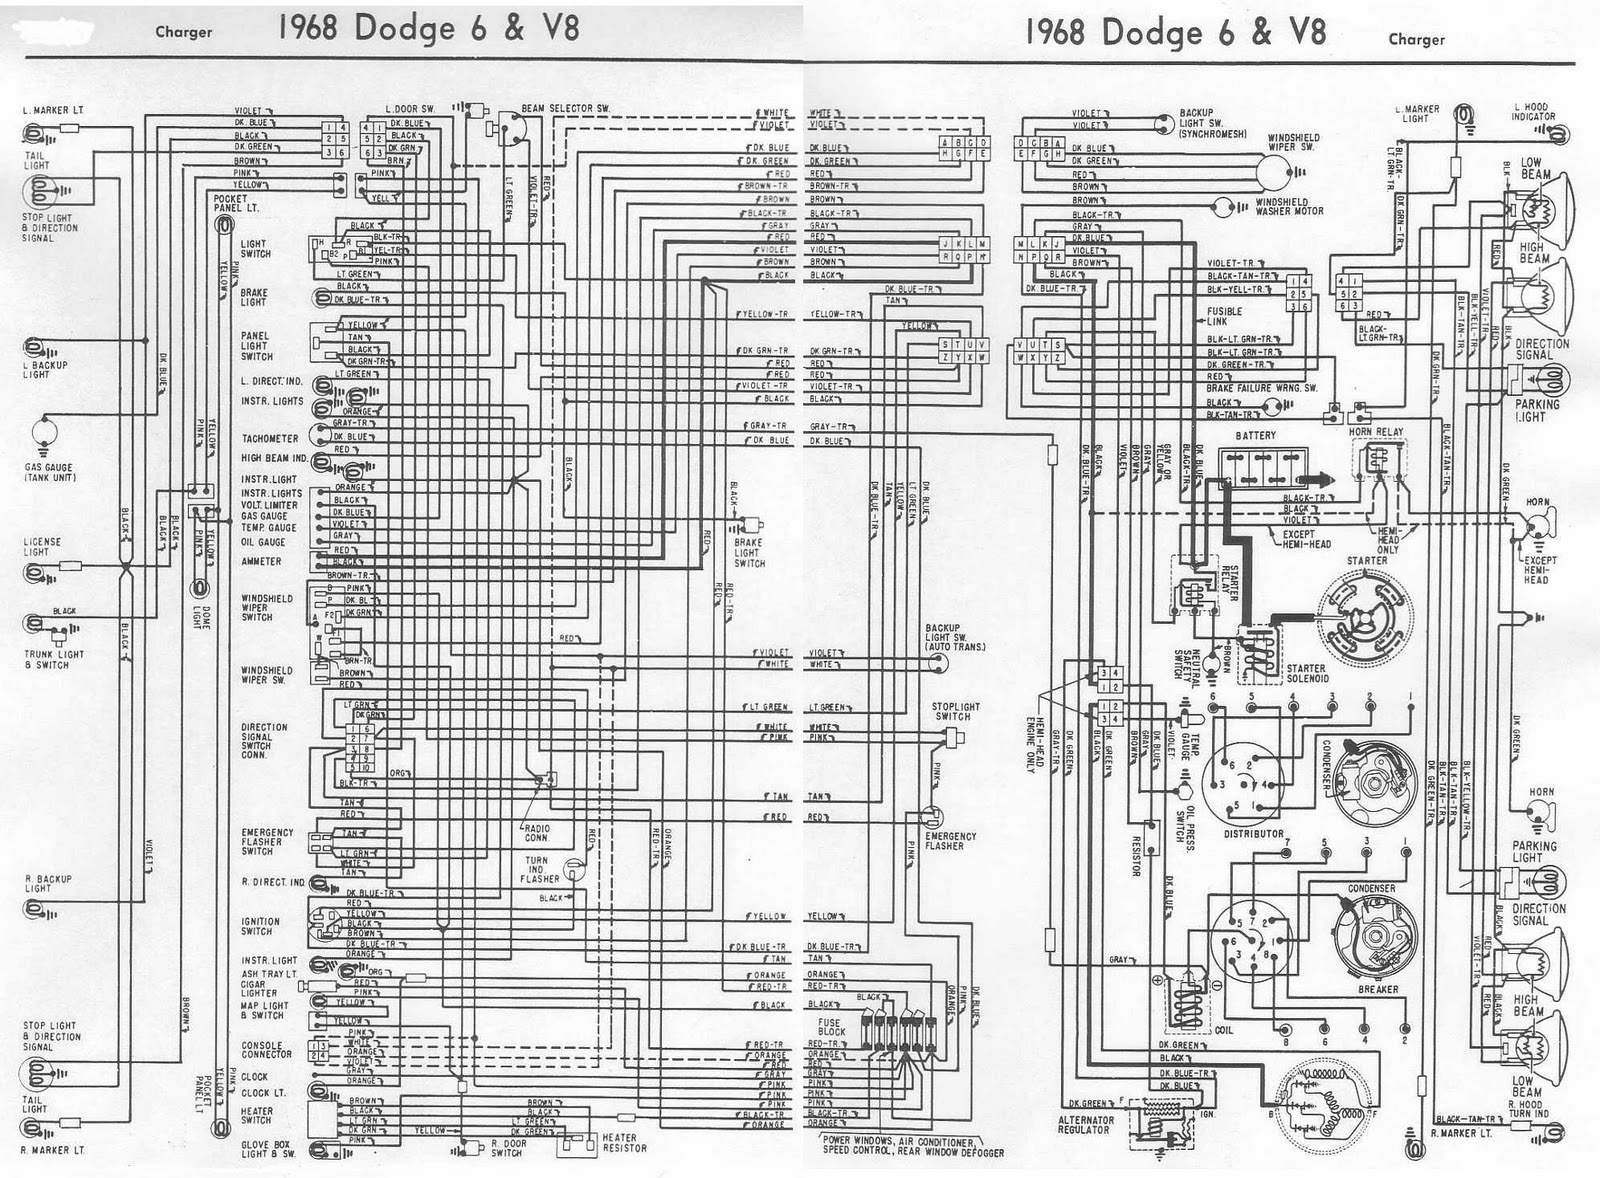 1968 d100 wiring diagram 1968 wiring diagrams online dodge charger 1968 6 and v8 complete electrical wiring diagram